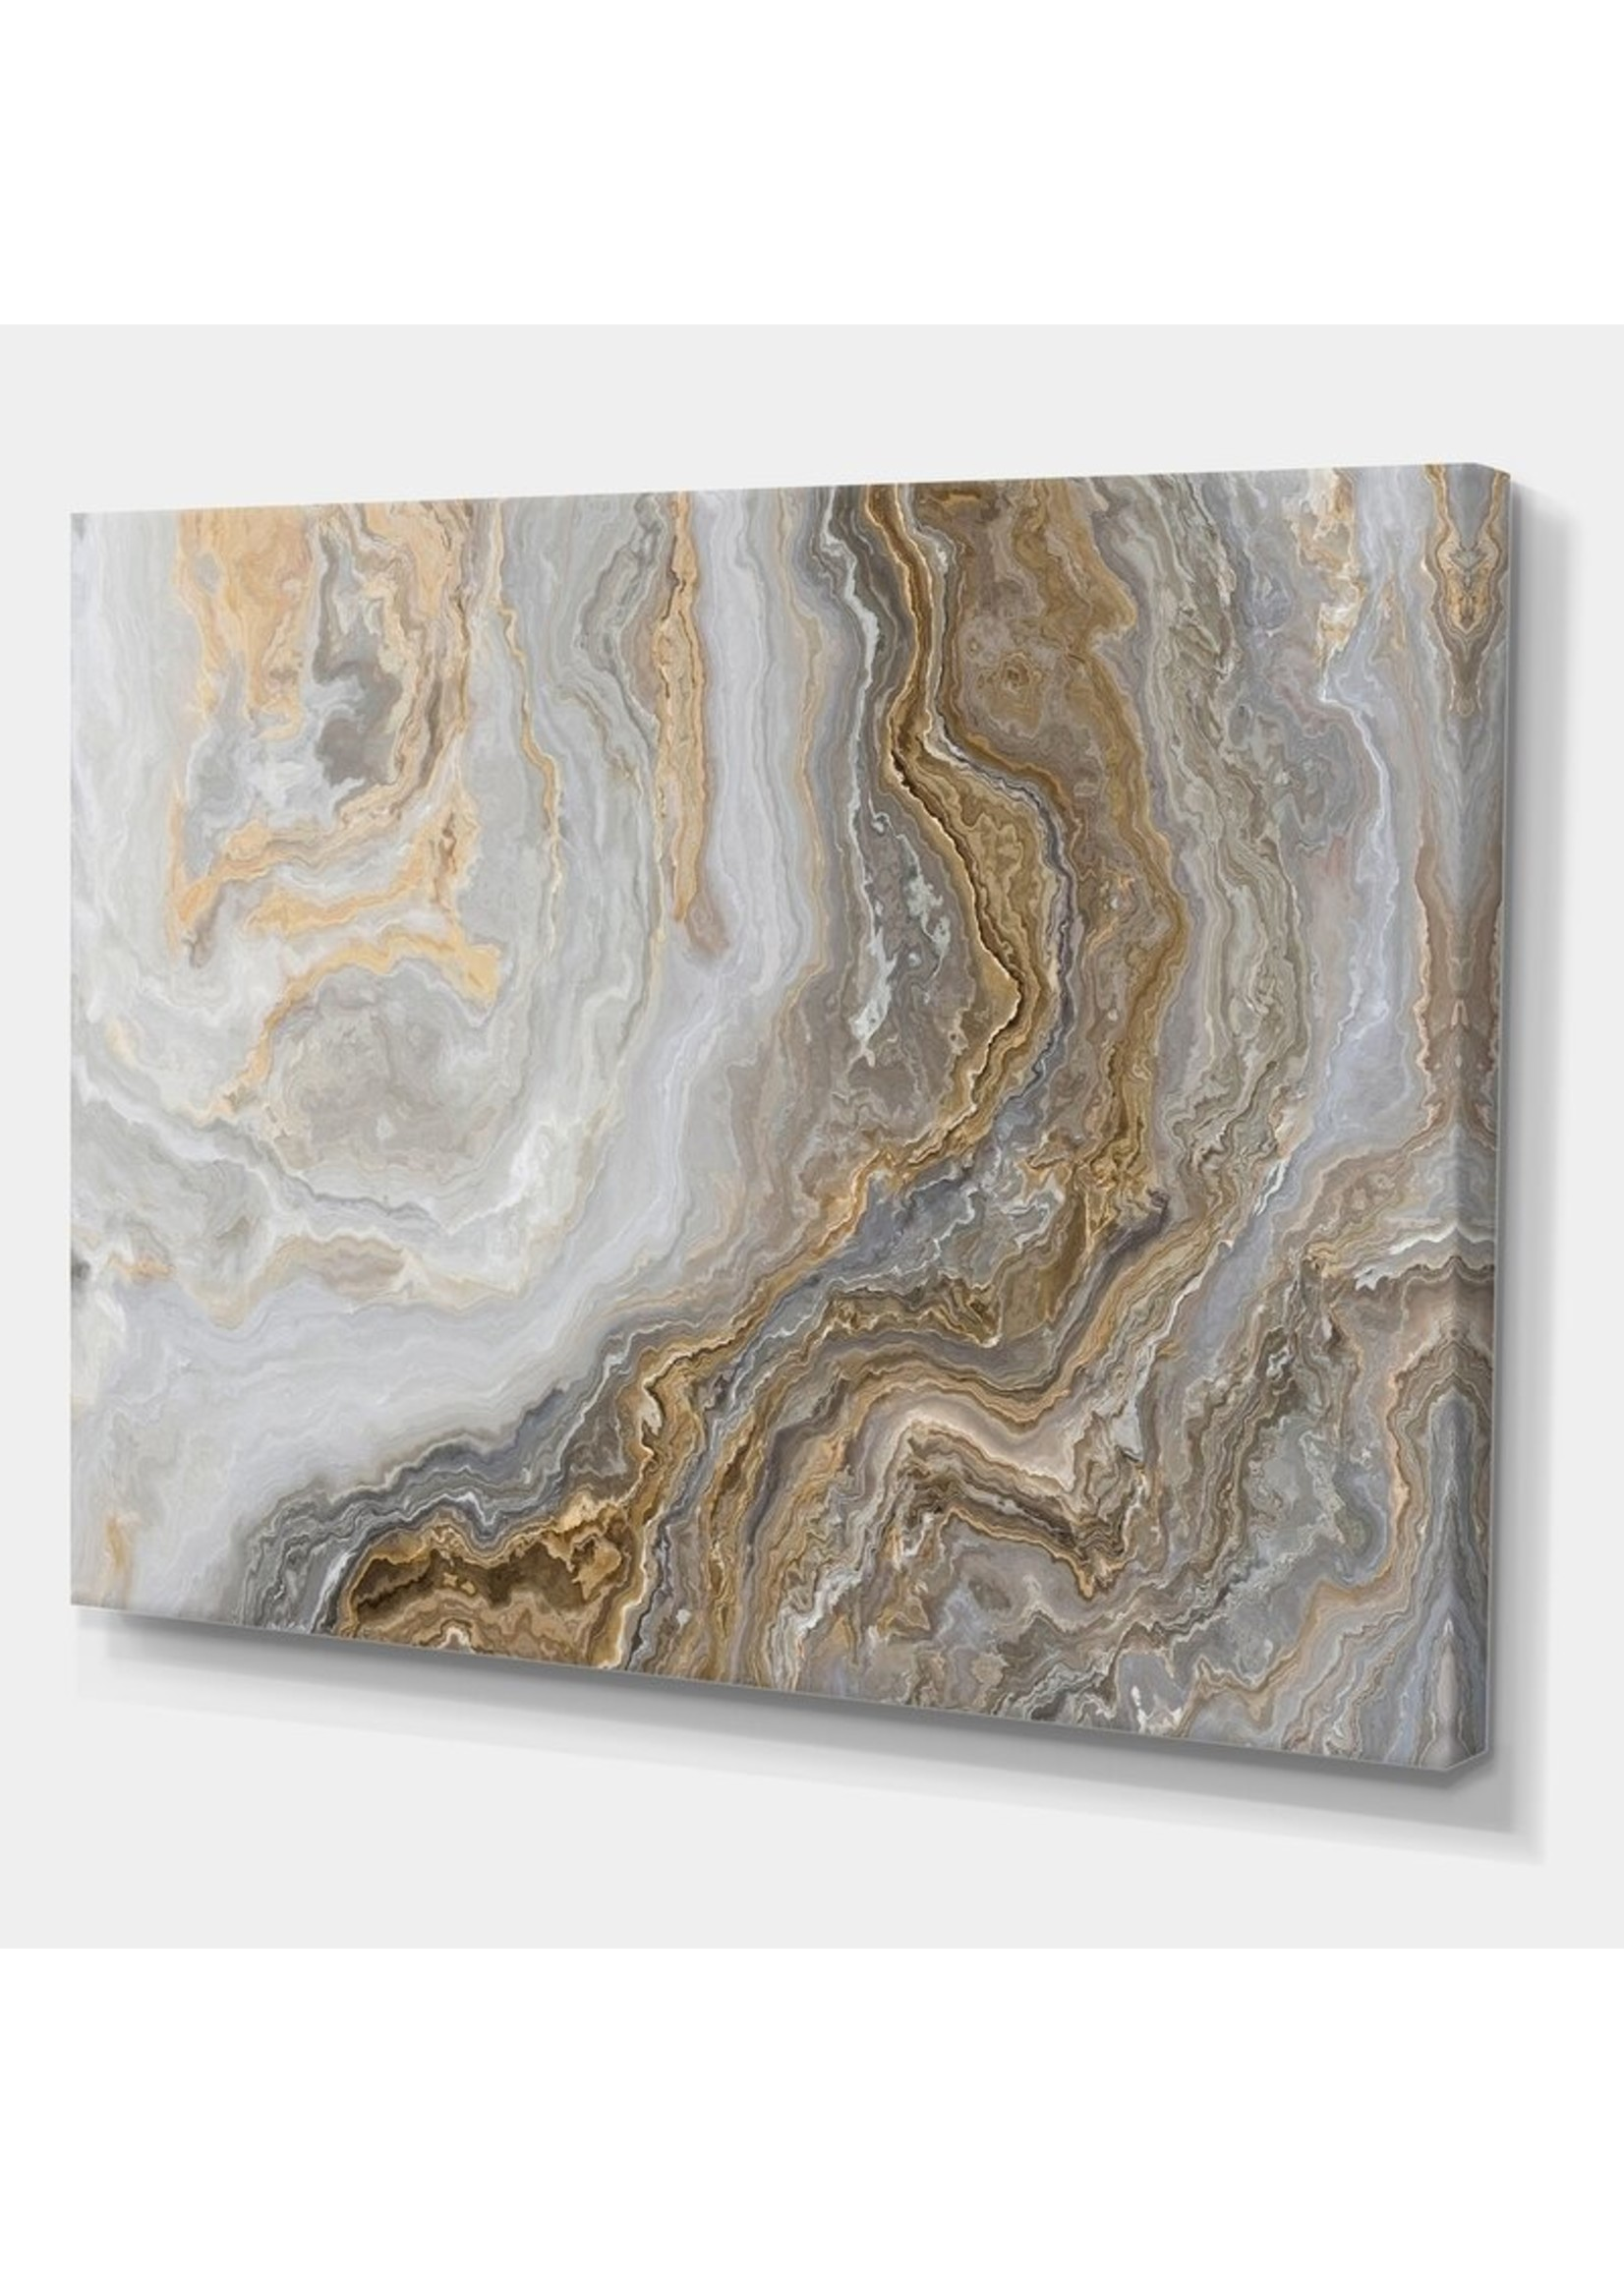 """*30"""" x 40"""" - White Marble with Curley Gray and Gold Veins - Wrapped Canvas Painting Print"""